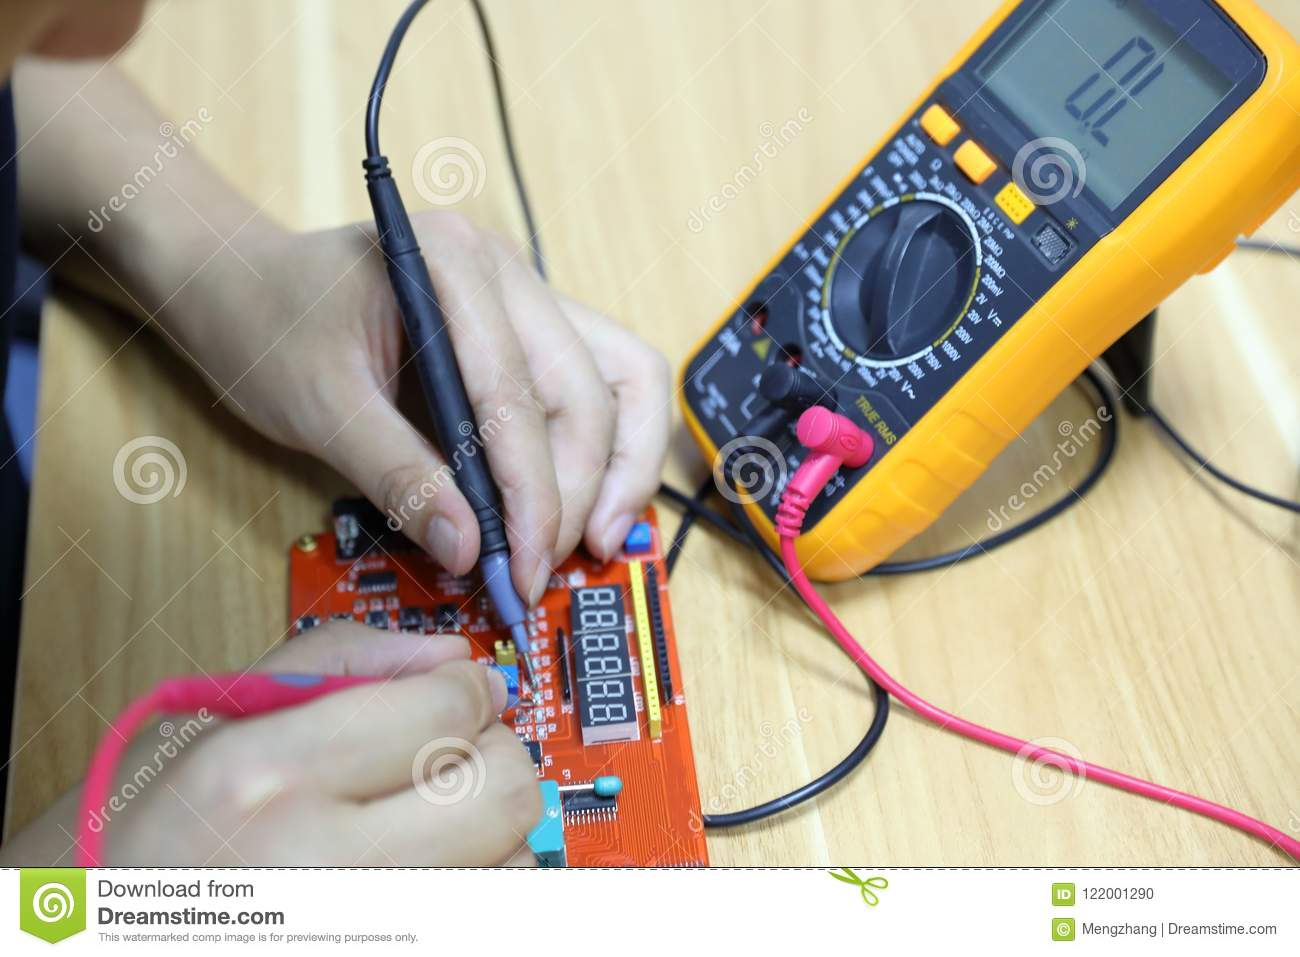 hight resolution of technician repairing computer hardware in the lab man use wiring diagram and multimeter